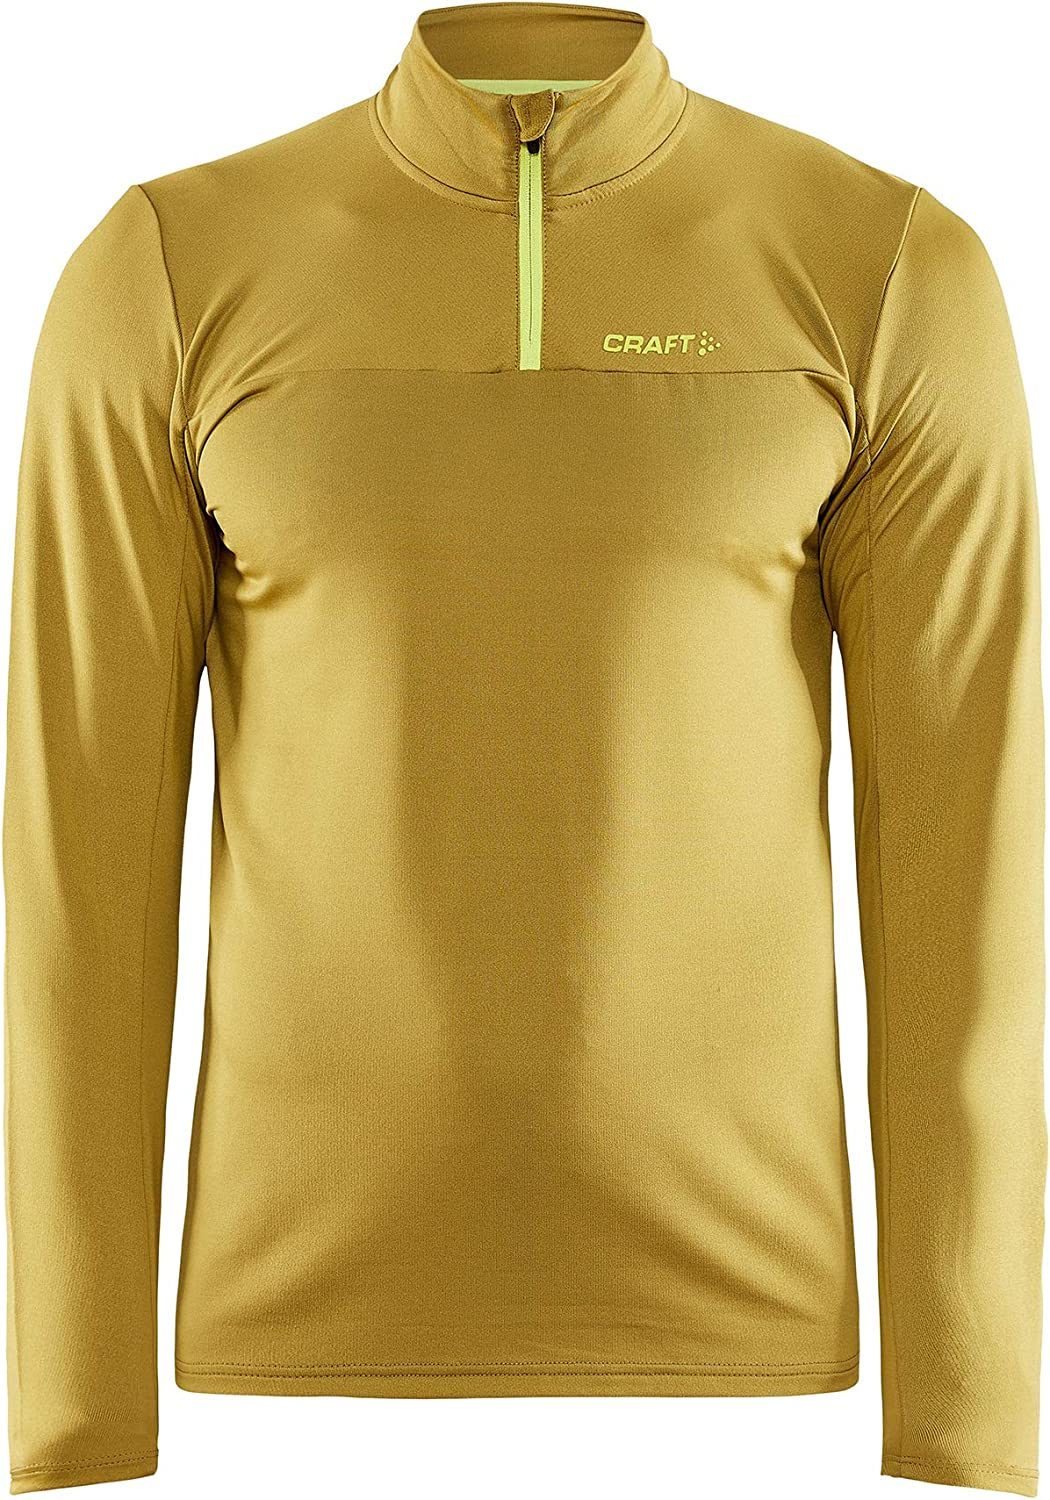 Craft Men's Core Gain Midlayer, Half Zip Jacket for Fall and Winter Days, Water-Repellent Brushed Fabric